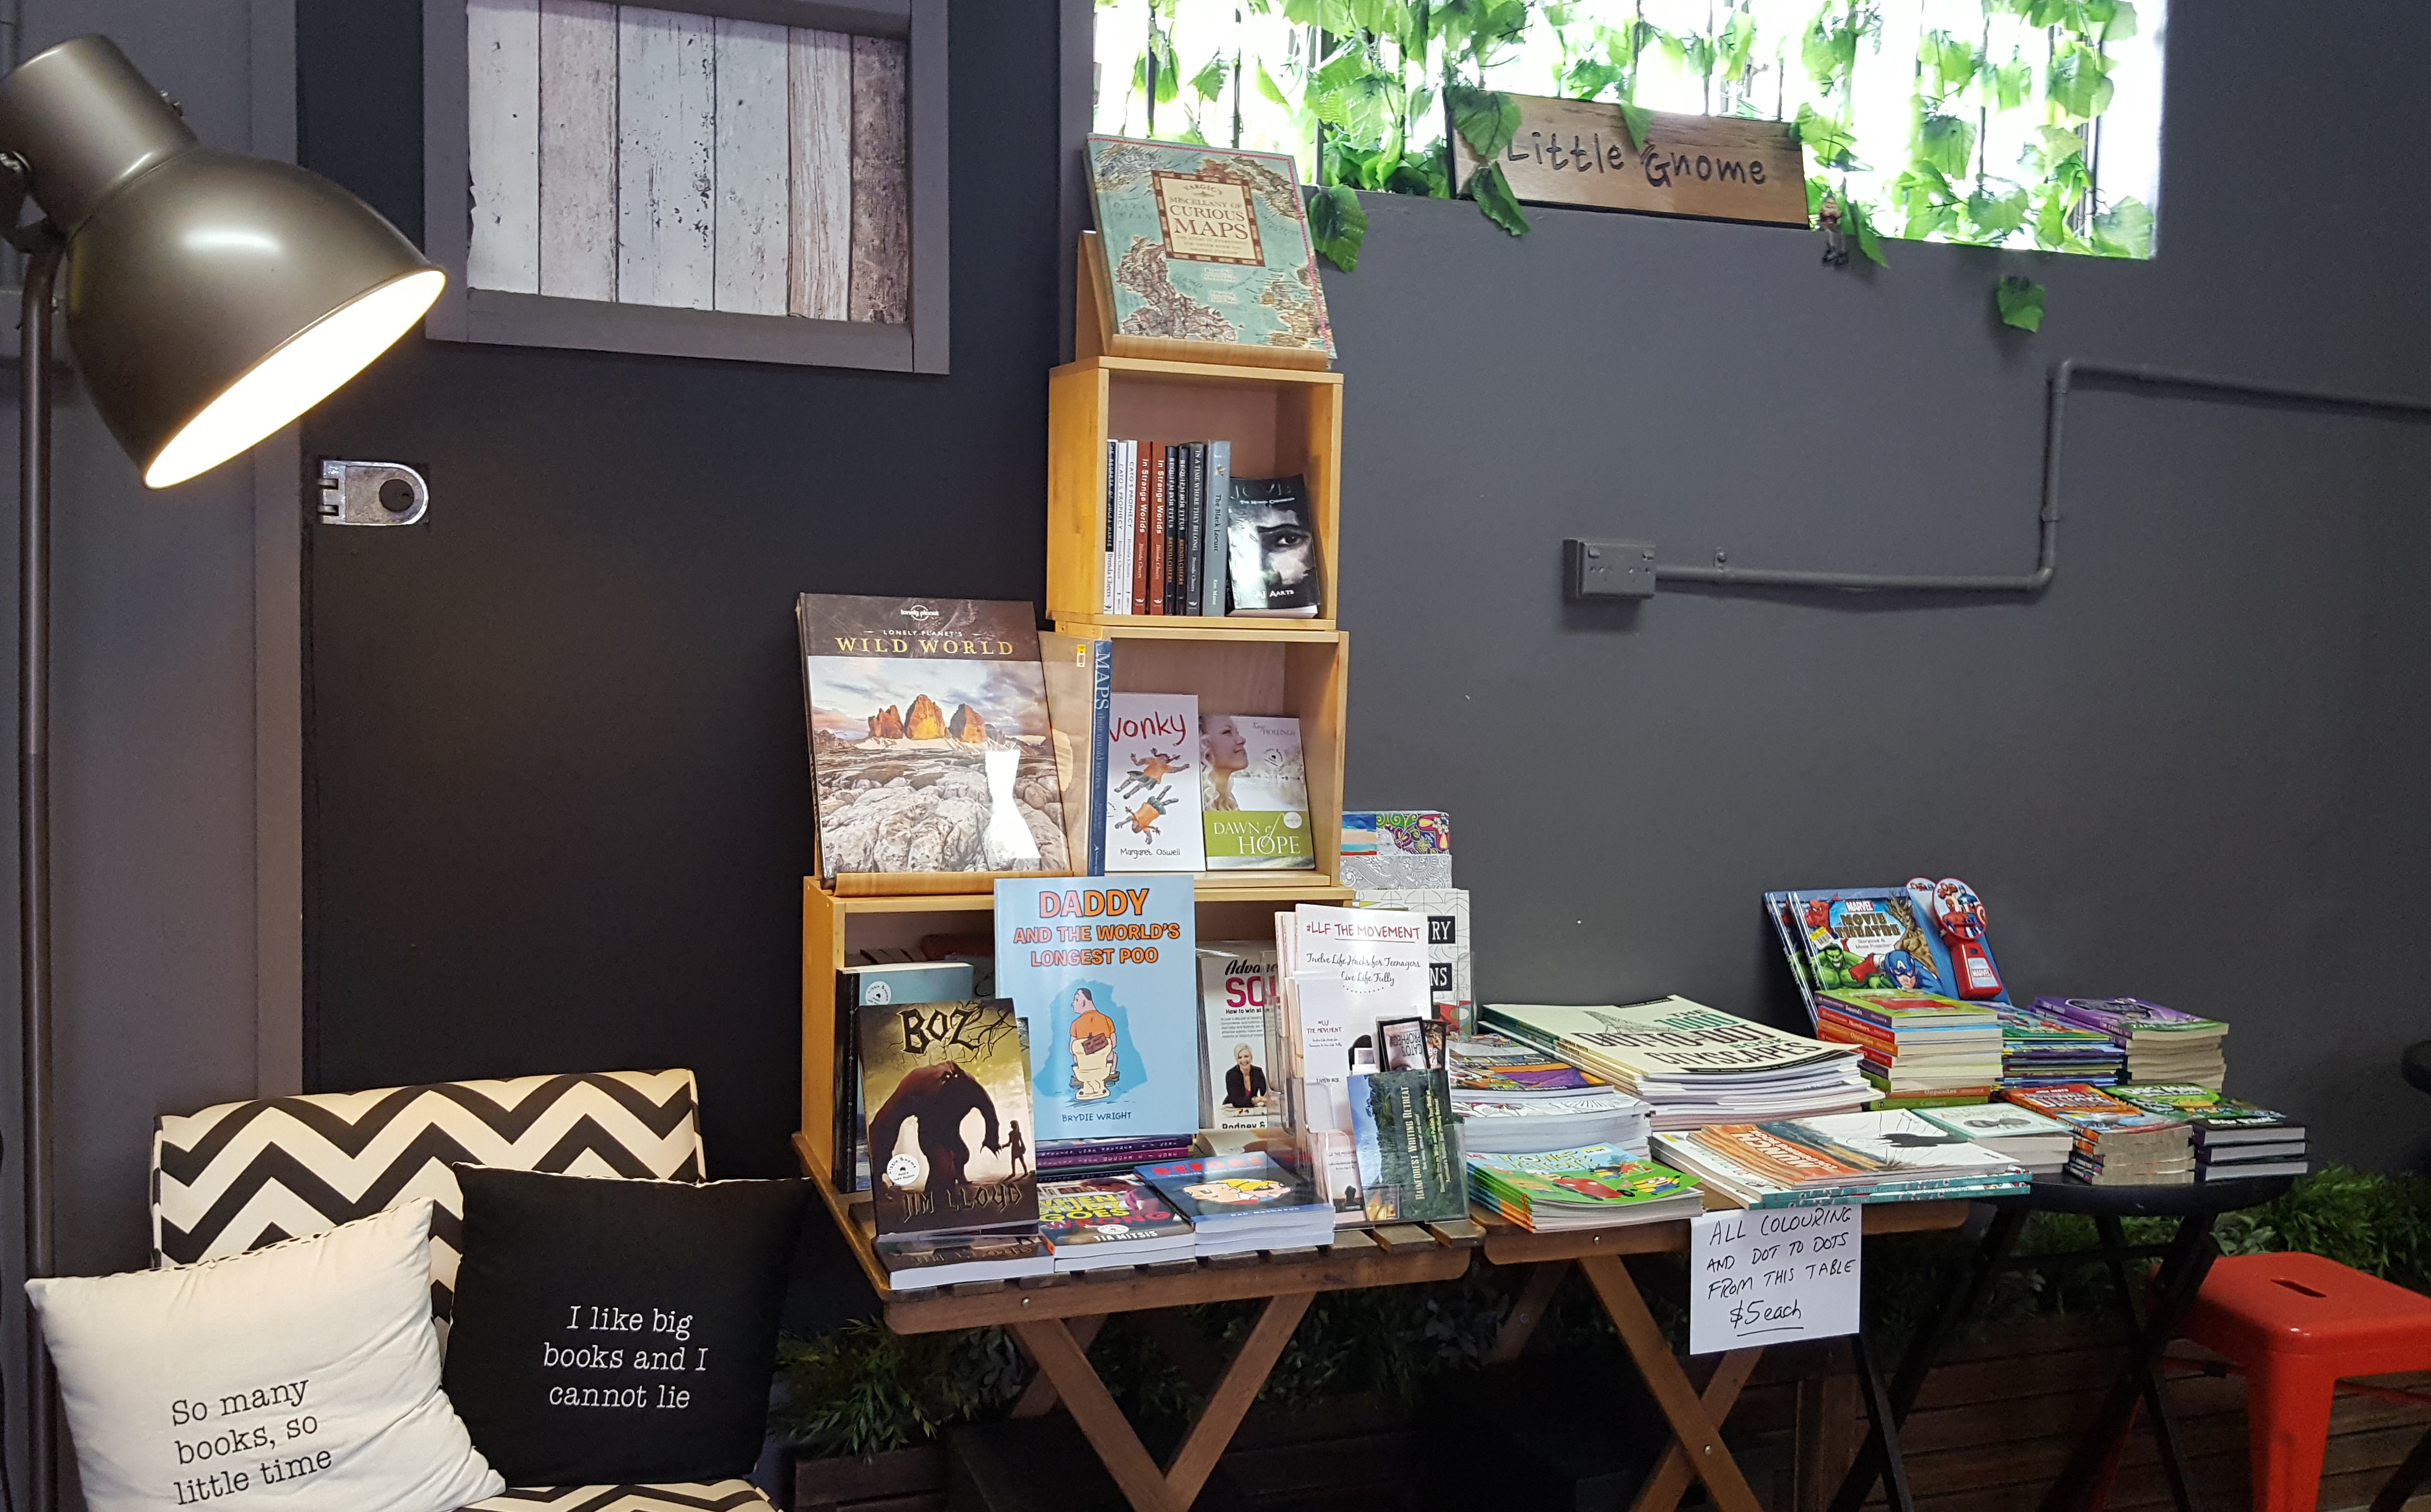 Little gnome book and coffee shop brisbane by brydie wright large image gumiabroncs Gallery